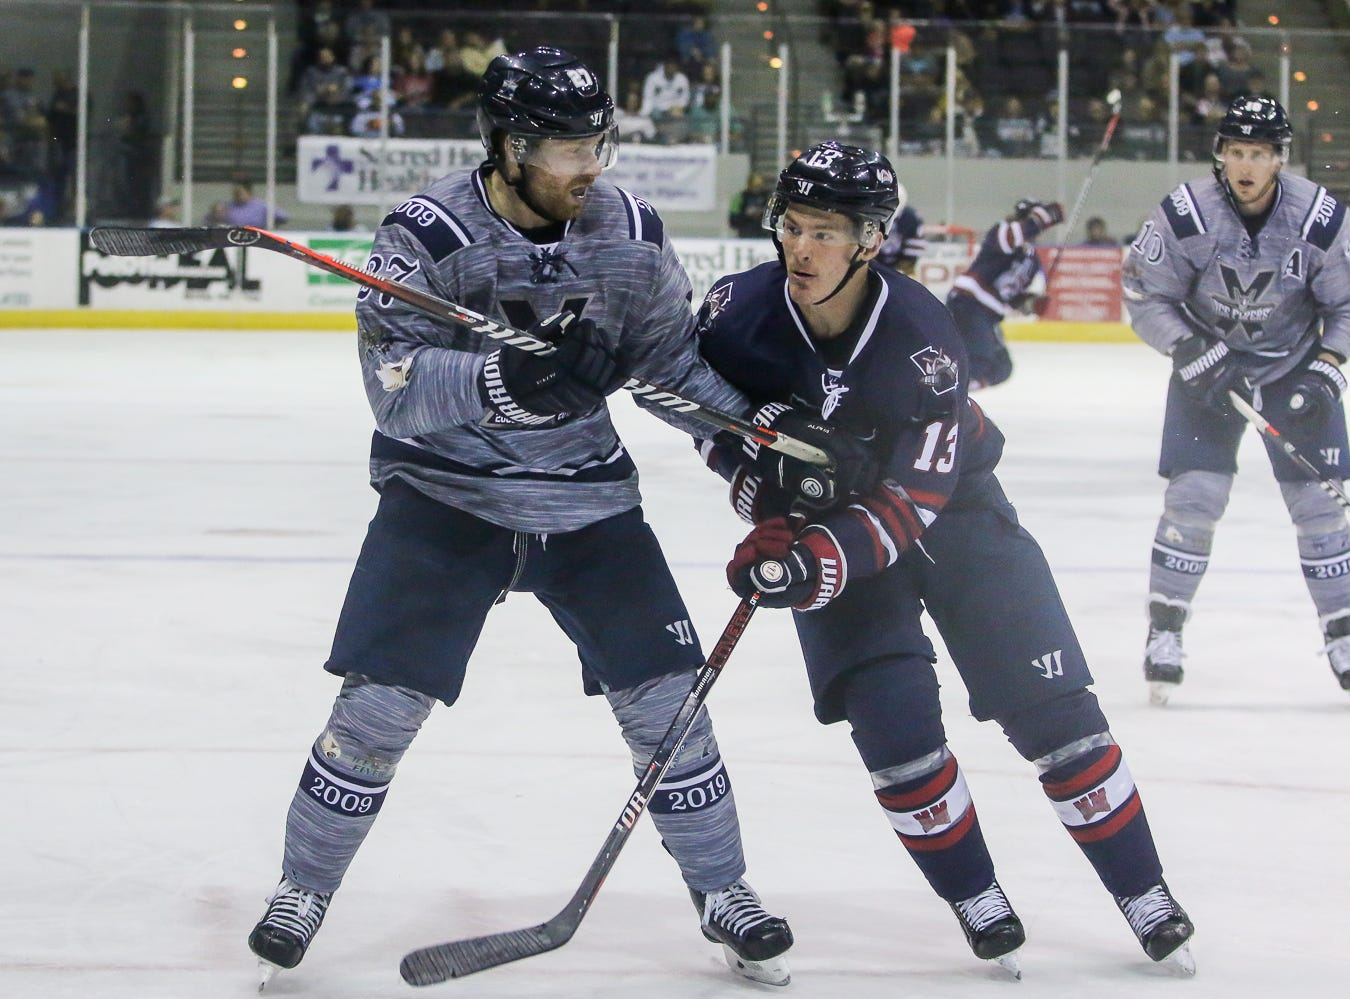 Pensacola's Jesse Kessler (27) keeps Macon's Jimmy Soper (13) from getting to the loose puck during the last home game of the regular season at the Pensacola Bay Center on Saturday, March 23, 2019. With over 4,300 people in attendance for Pensacola's 3-1 victory, the Ice Flyers mark six straight years of over 100,000 people at their home games each season. The team has won their last five games in a row and will finish out their last five games on the road before entering the playoffs in a couple of weeks.